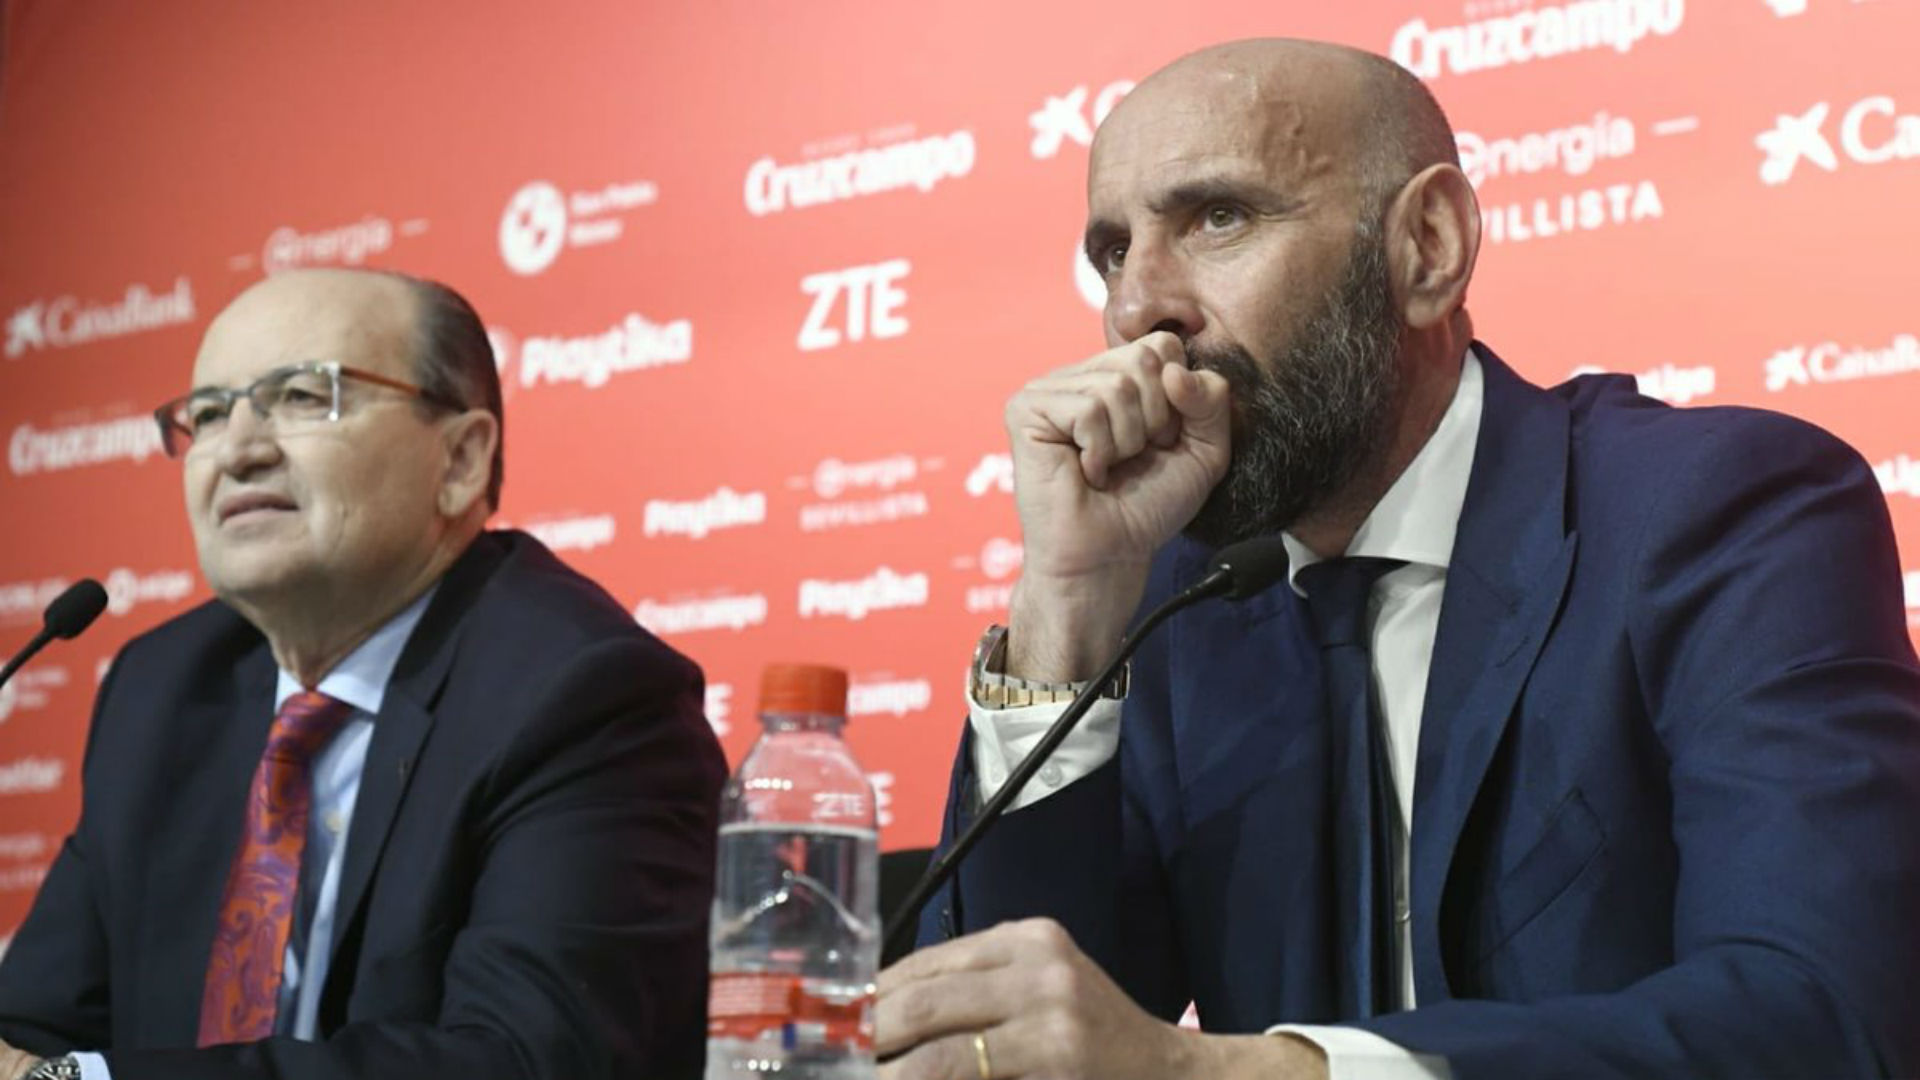 Banega glad to see Monchi back at Sevilla